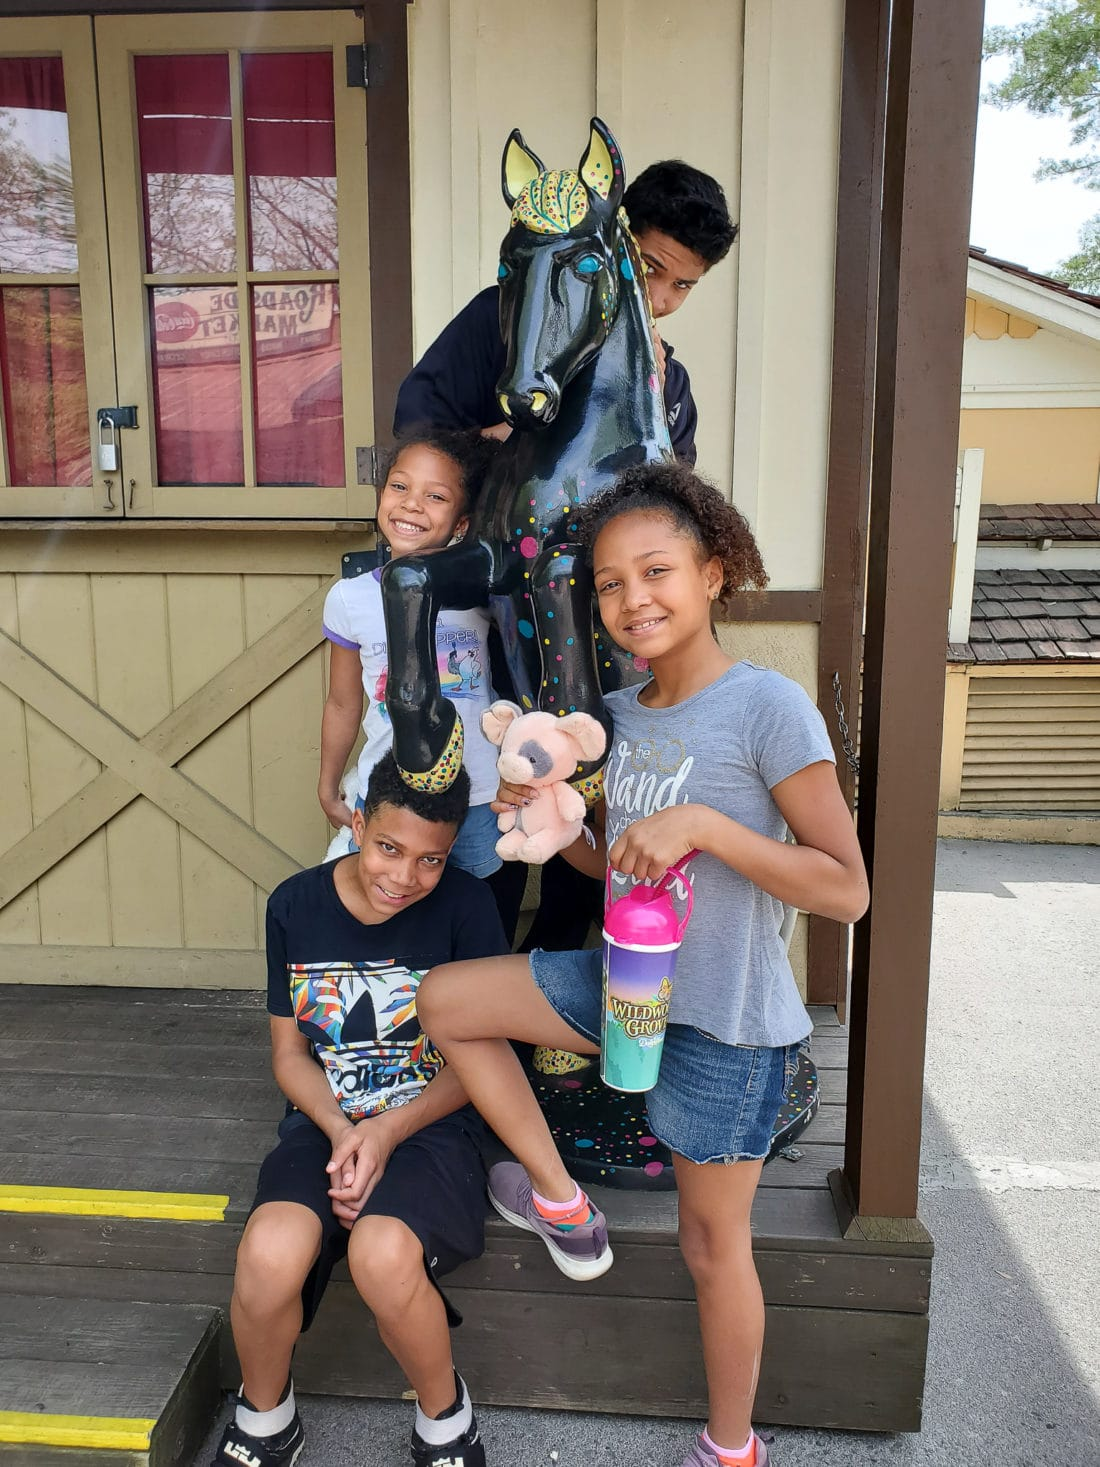 Dollywood Family Shot. My family spent the day playing and eating at the Dollywood theme park, and we are happy to report we had a blast! Read all about our trip and learn why Dollwood is a must visit destination while you are in Pigeon Forge, TN.